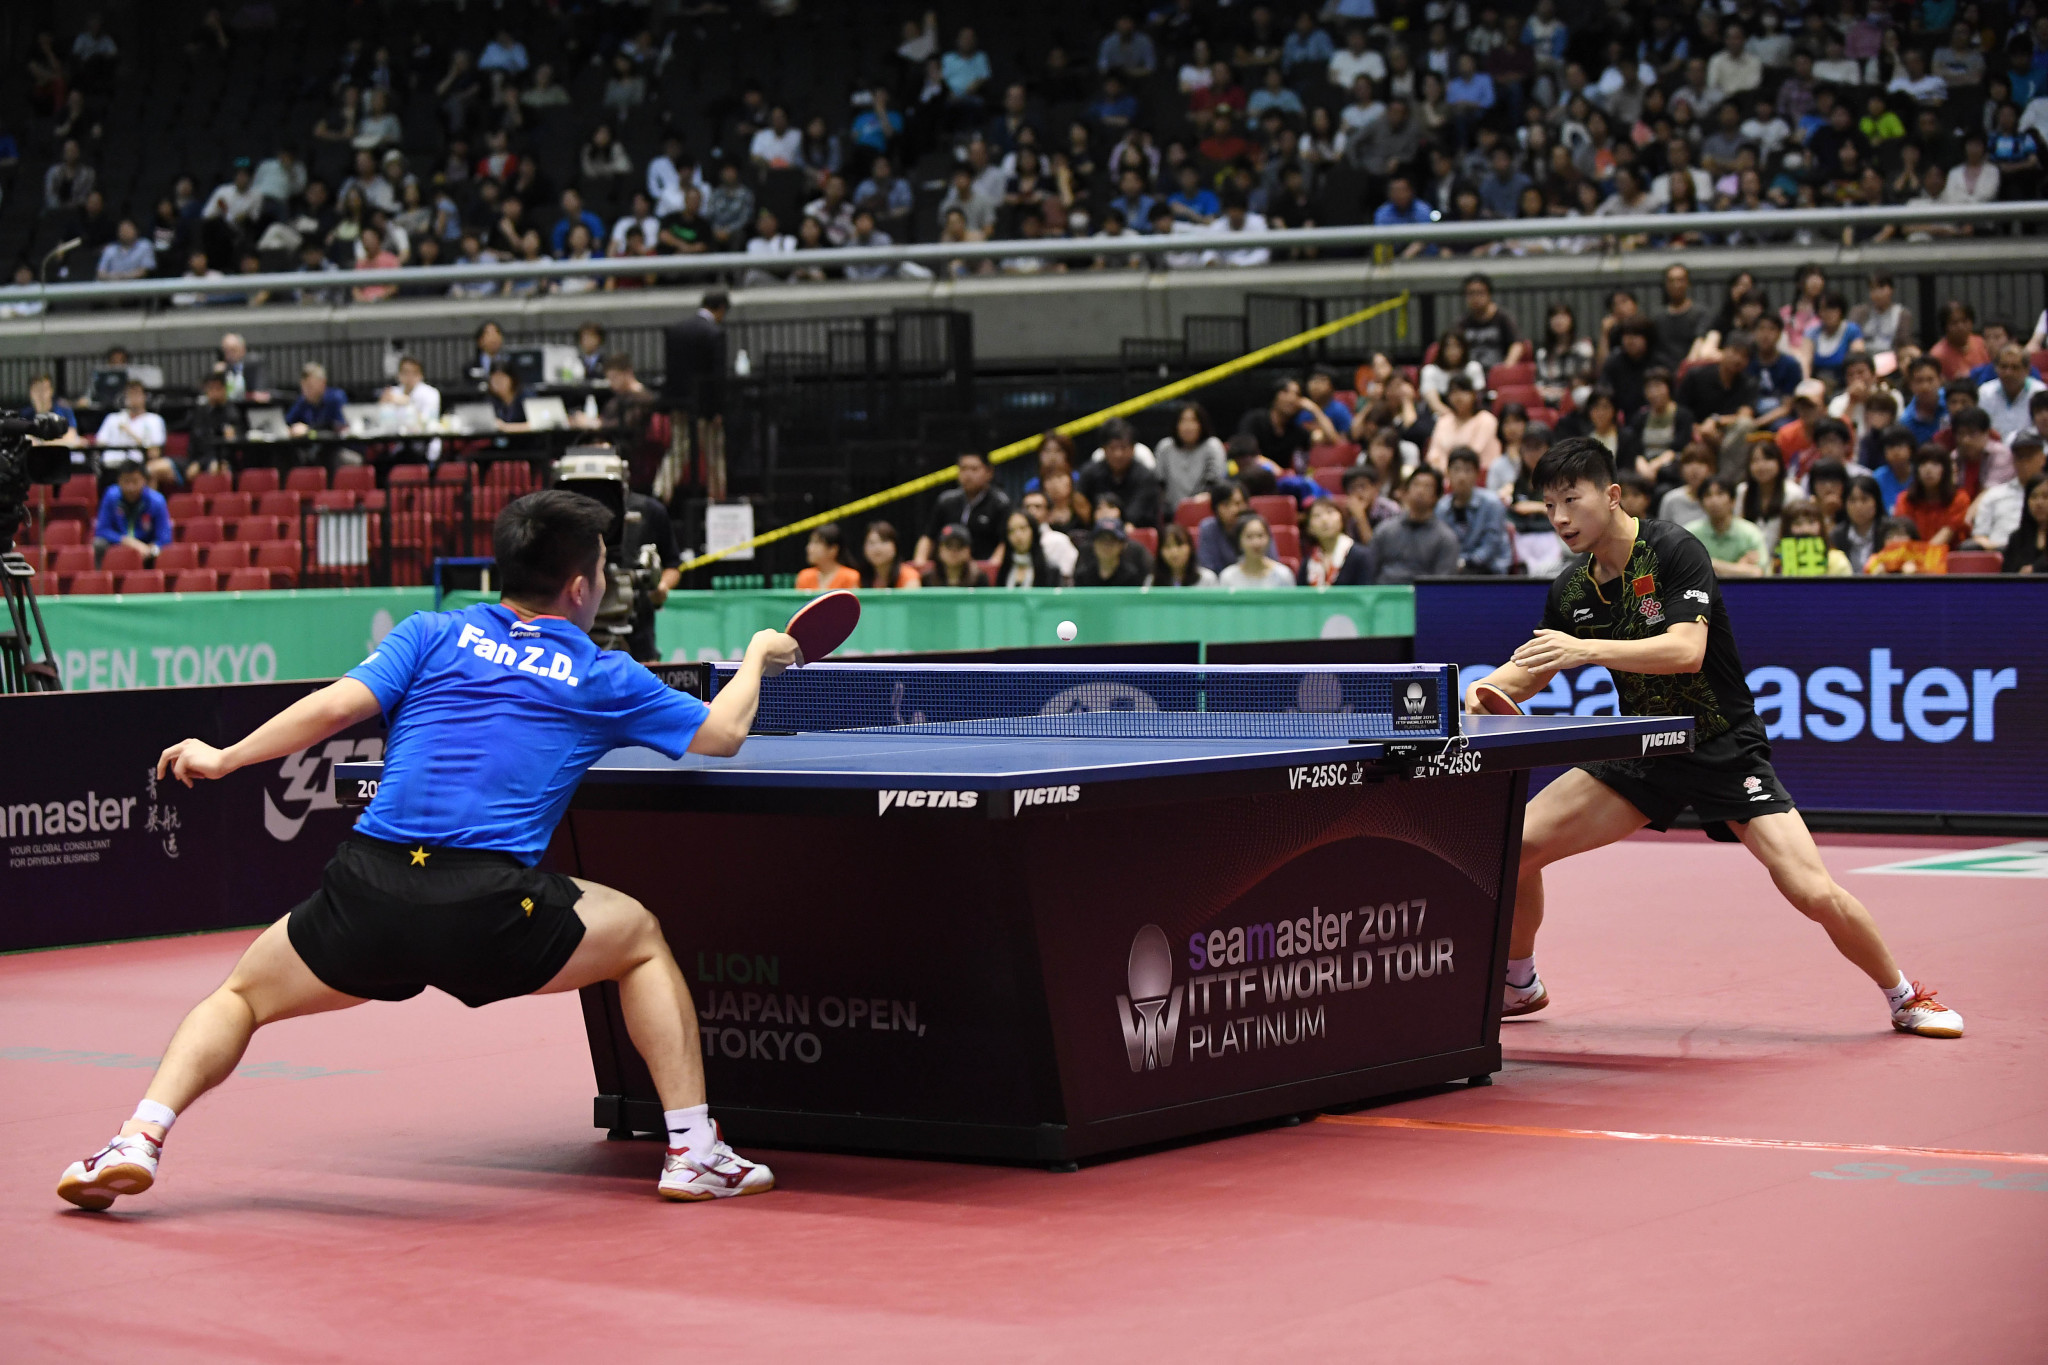 The ITTF World Tour Platinum China Open is set to be rescheduled ©Getty Images